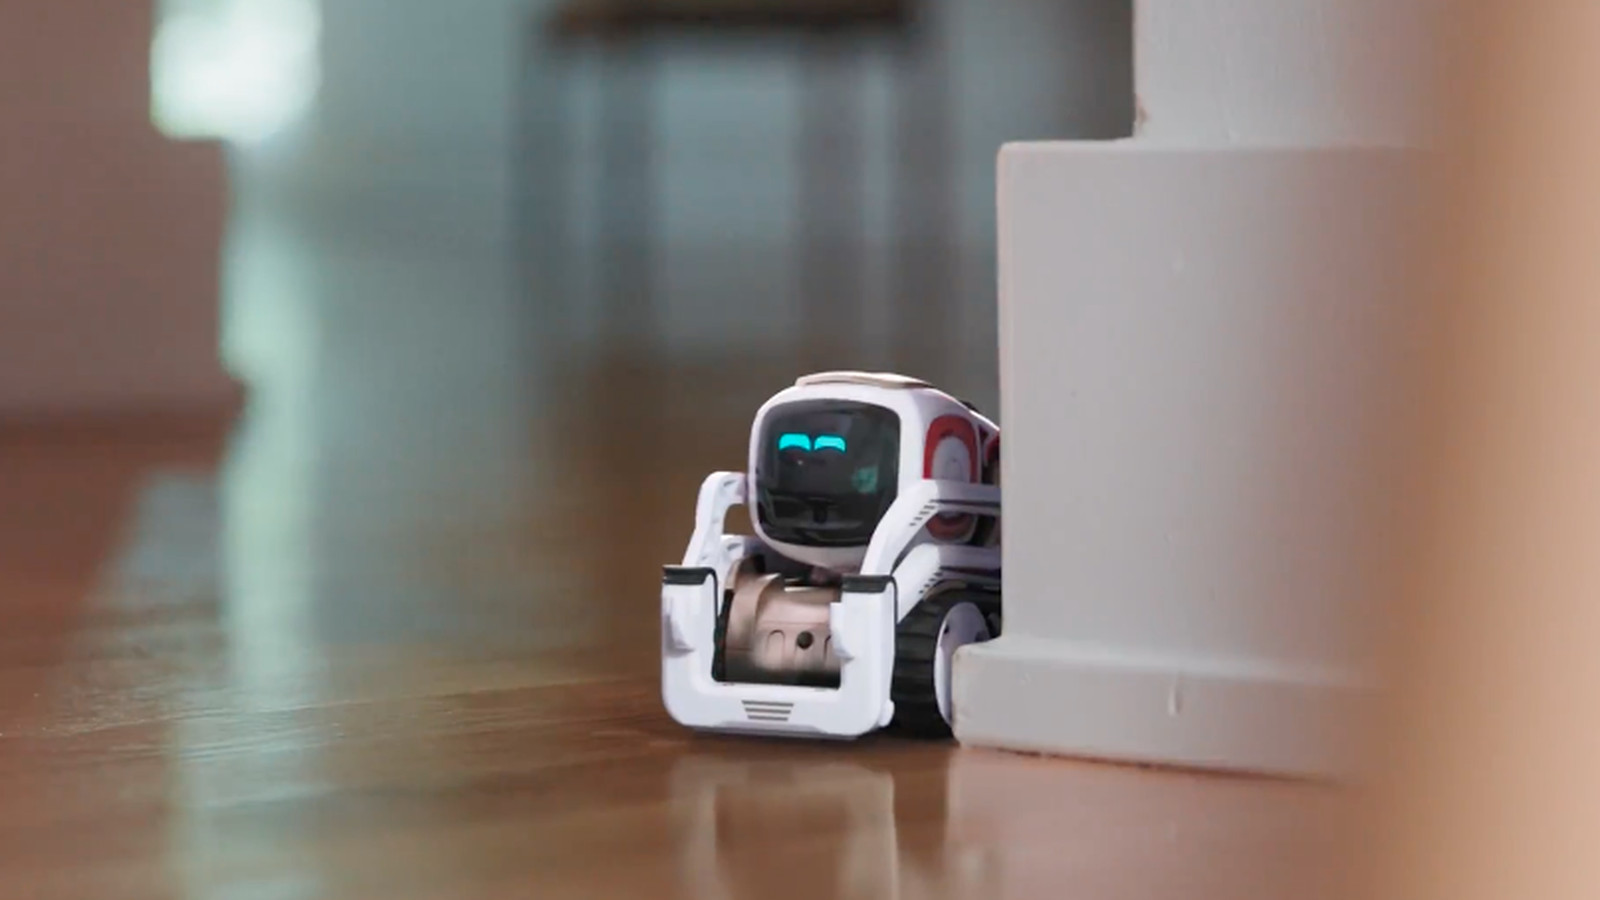 Cosmo Toy Robot New : Anki s new cozmo ad shows a mischievous toy robot pulling